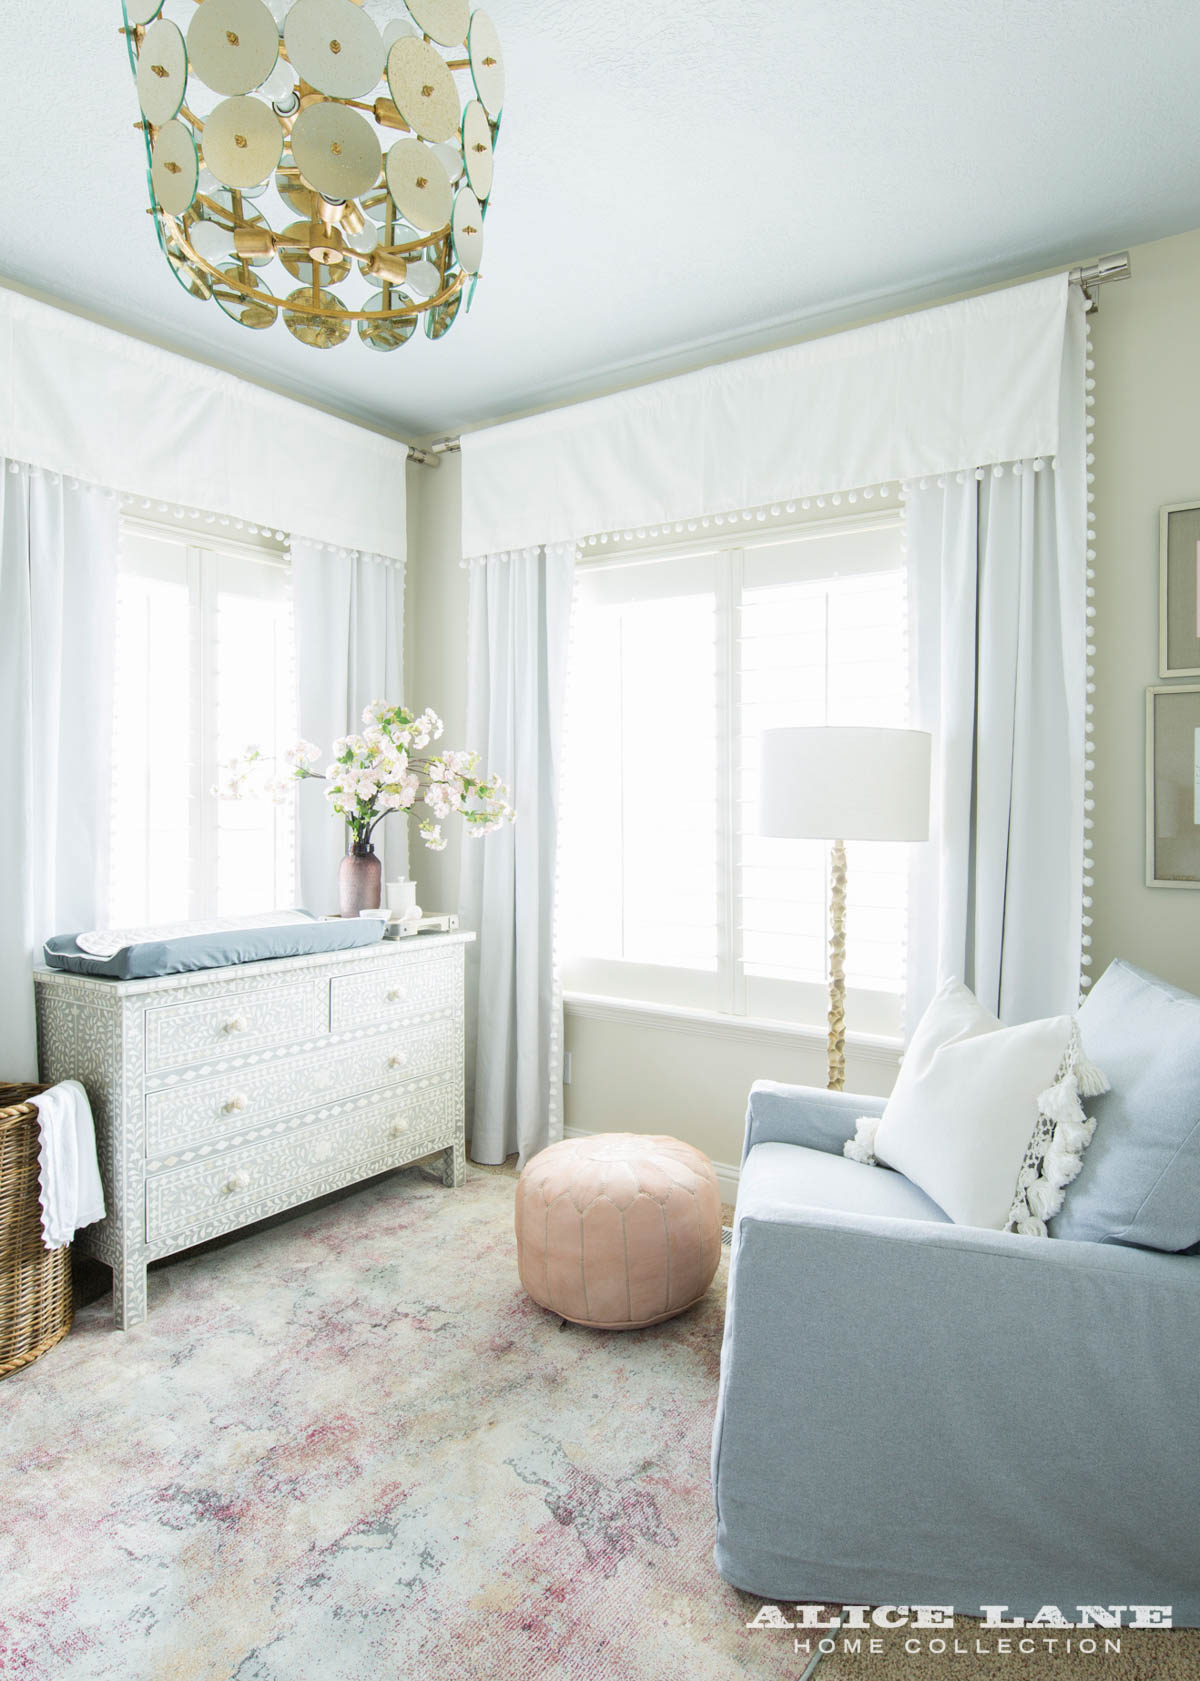 Neutral-Nursery-Designed-by-Alice-Lane-Home-Collection-1.jpg